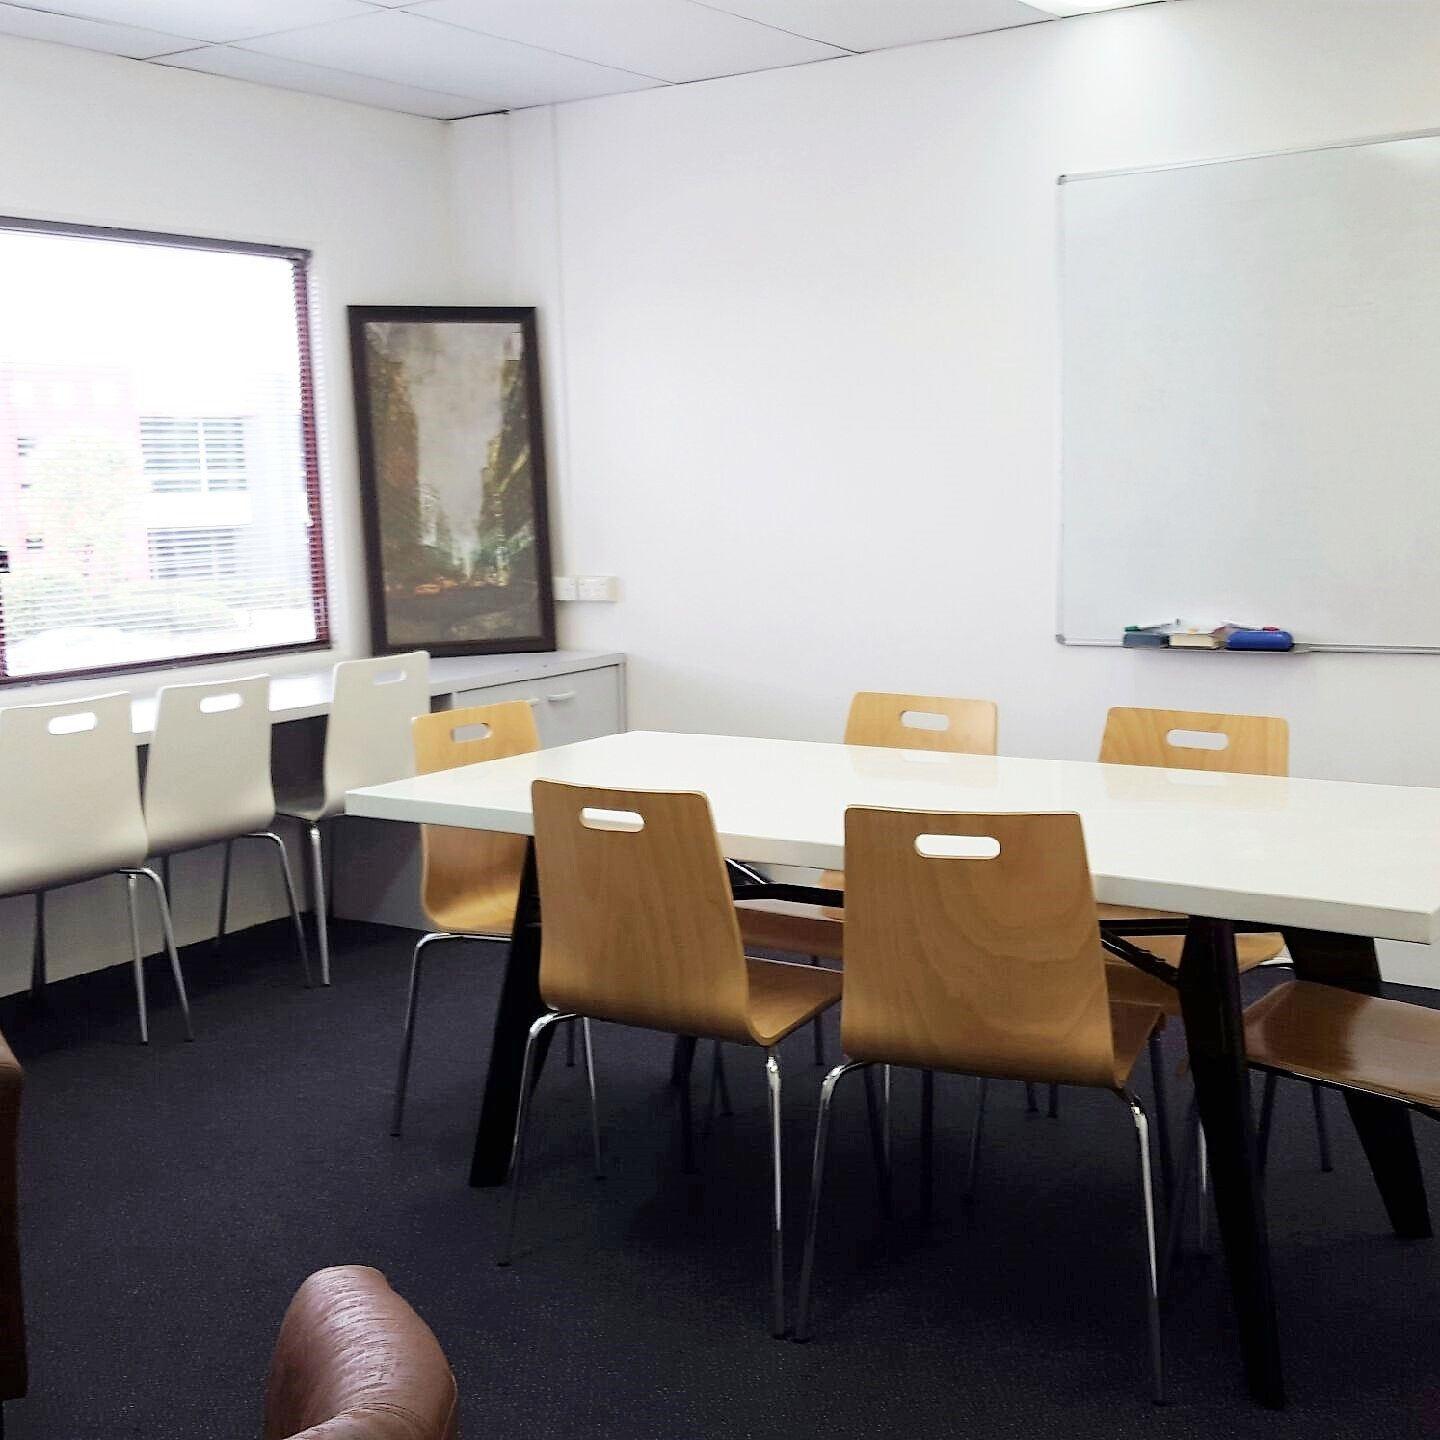 Our larger meeting room, The Boardroom, has been extensively used for seminars and group meetings. Located on the upper level, it is popular with our Clients who provide training, counselling services and also for interview purposes. Clients are greeted by our Reception staff on arrival where refreshments can be made to order and access to our pay-as-you-use business machines is also conveniently located. The Boardroom has a lovely street aspect and can seat up to 10 people comfortably as well as providing a conversation nook for more intimate meetings. It is also fully air-conditioned and has a high speed, cable or Wi-Fi internet connection included in the hire charges. With whiteboard facilities, it is perfect for demonstrations and presentations. It can be configured in many ways and our Reception staff are happy to assist with set up requirements.